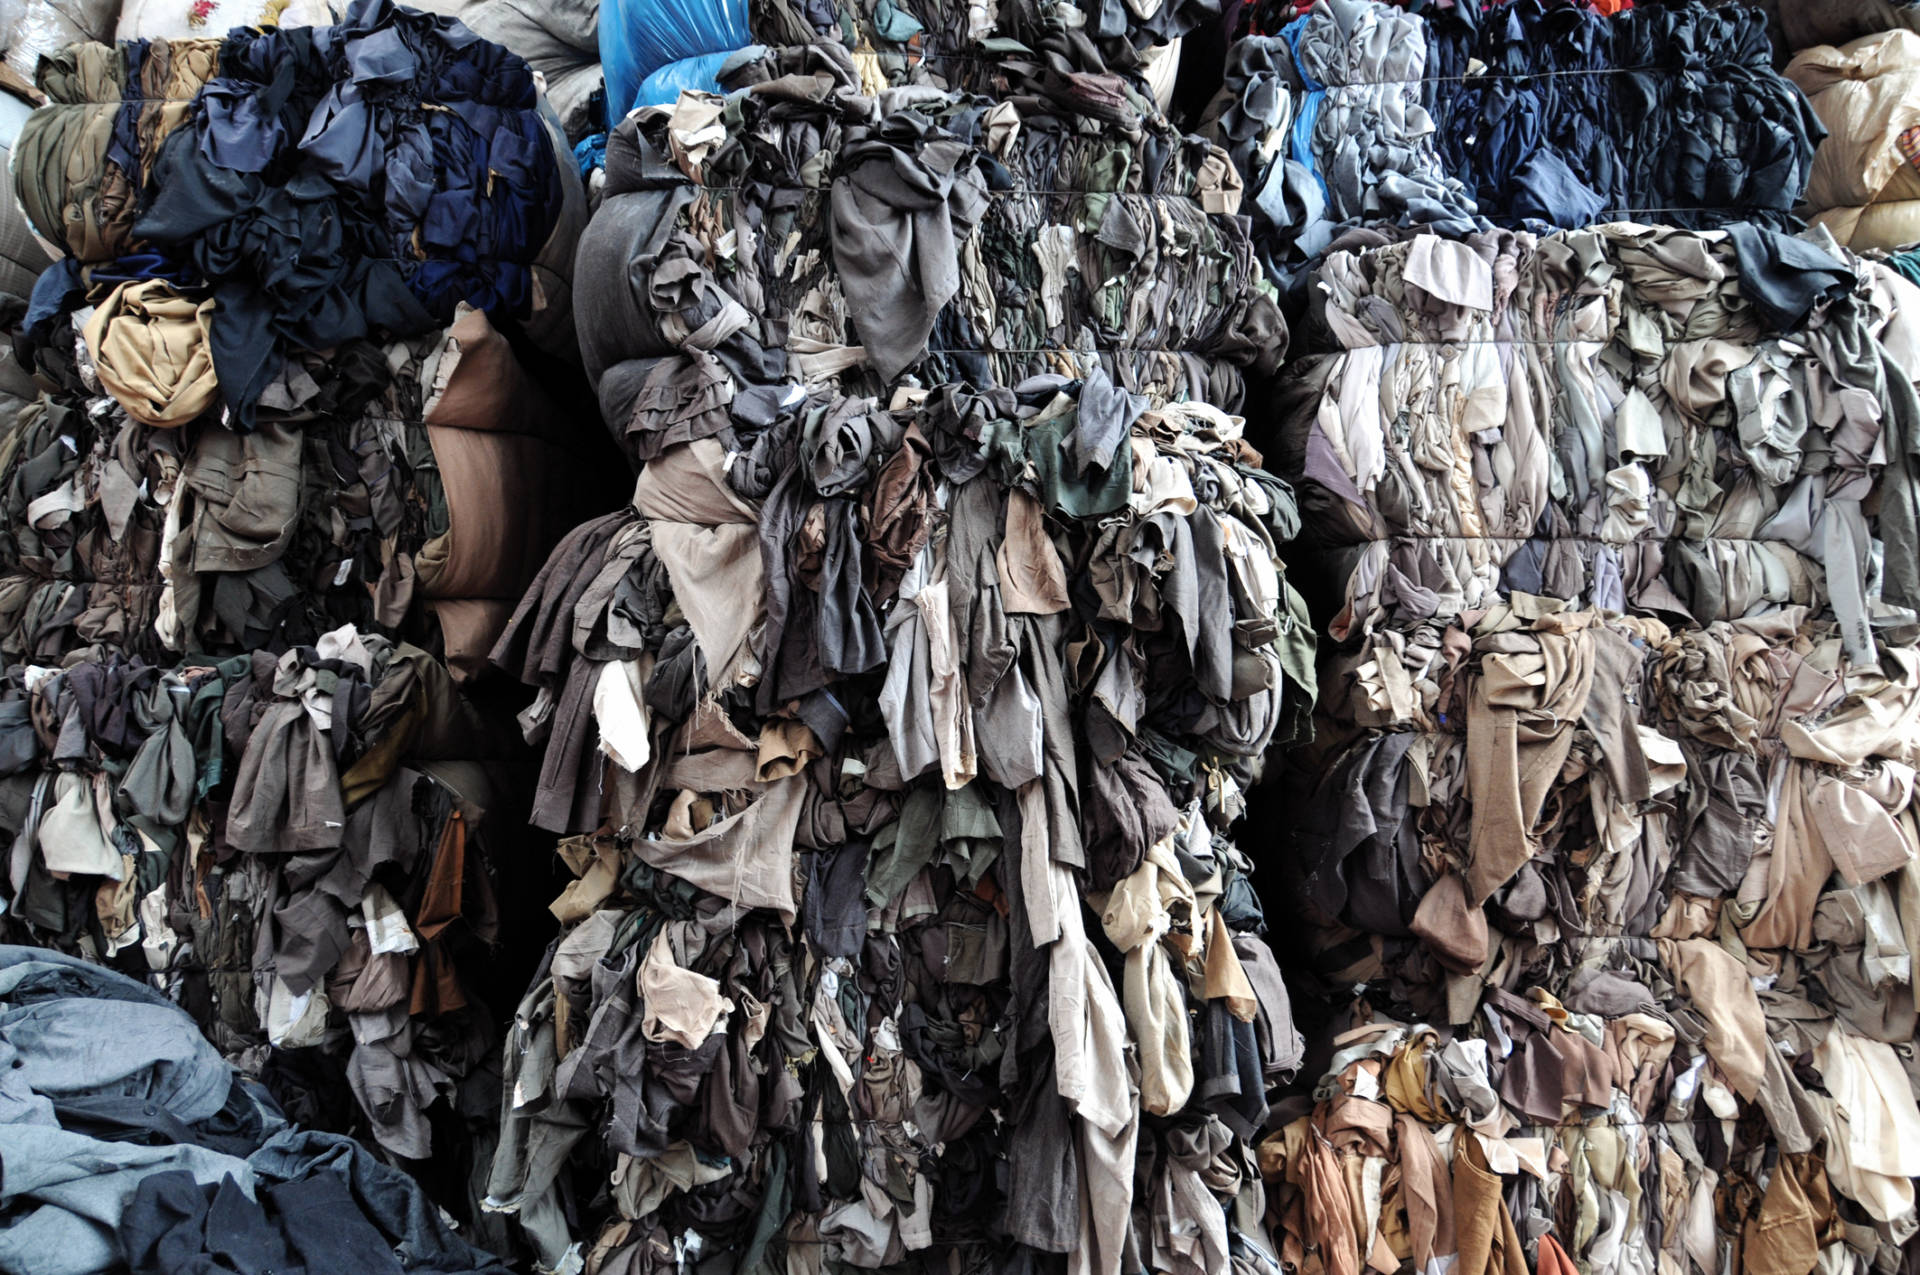 Thrift stores often recycle unwanted donations. Getty Images